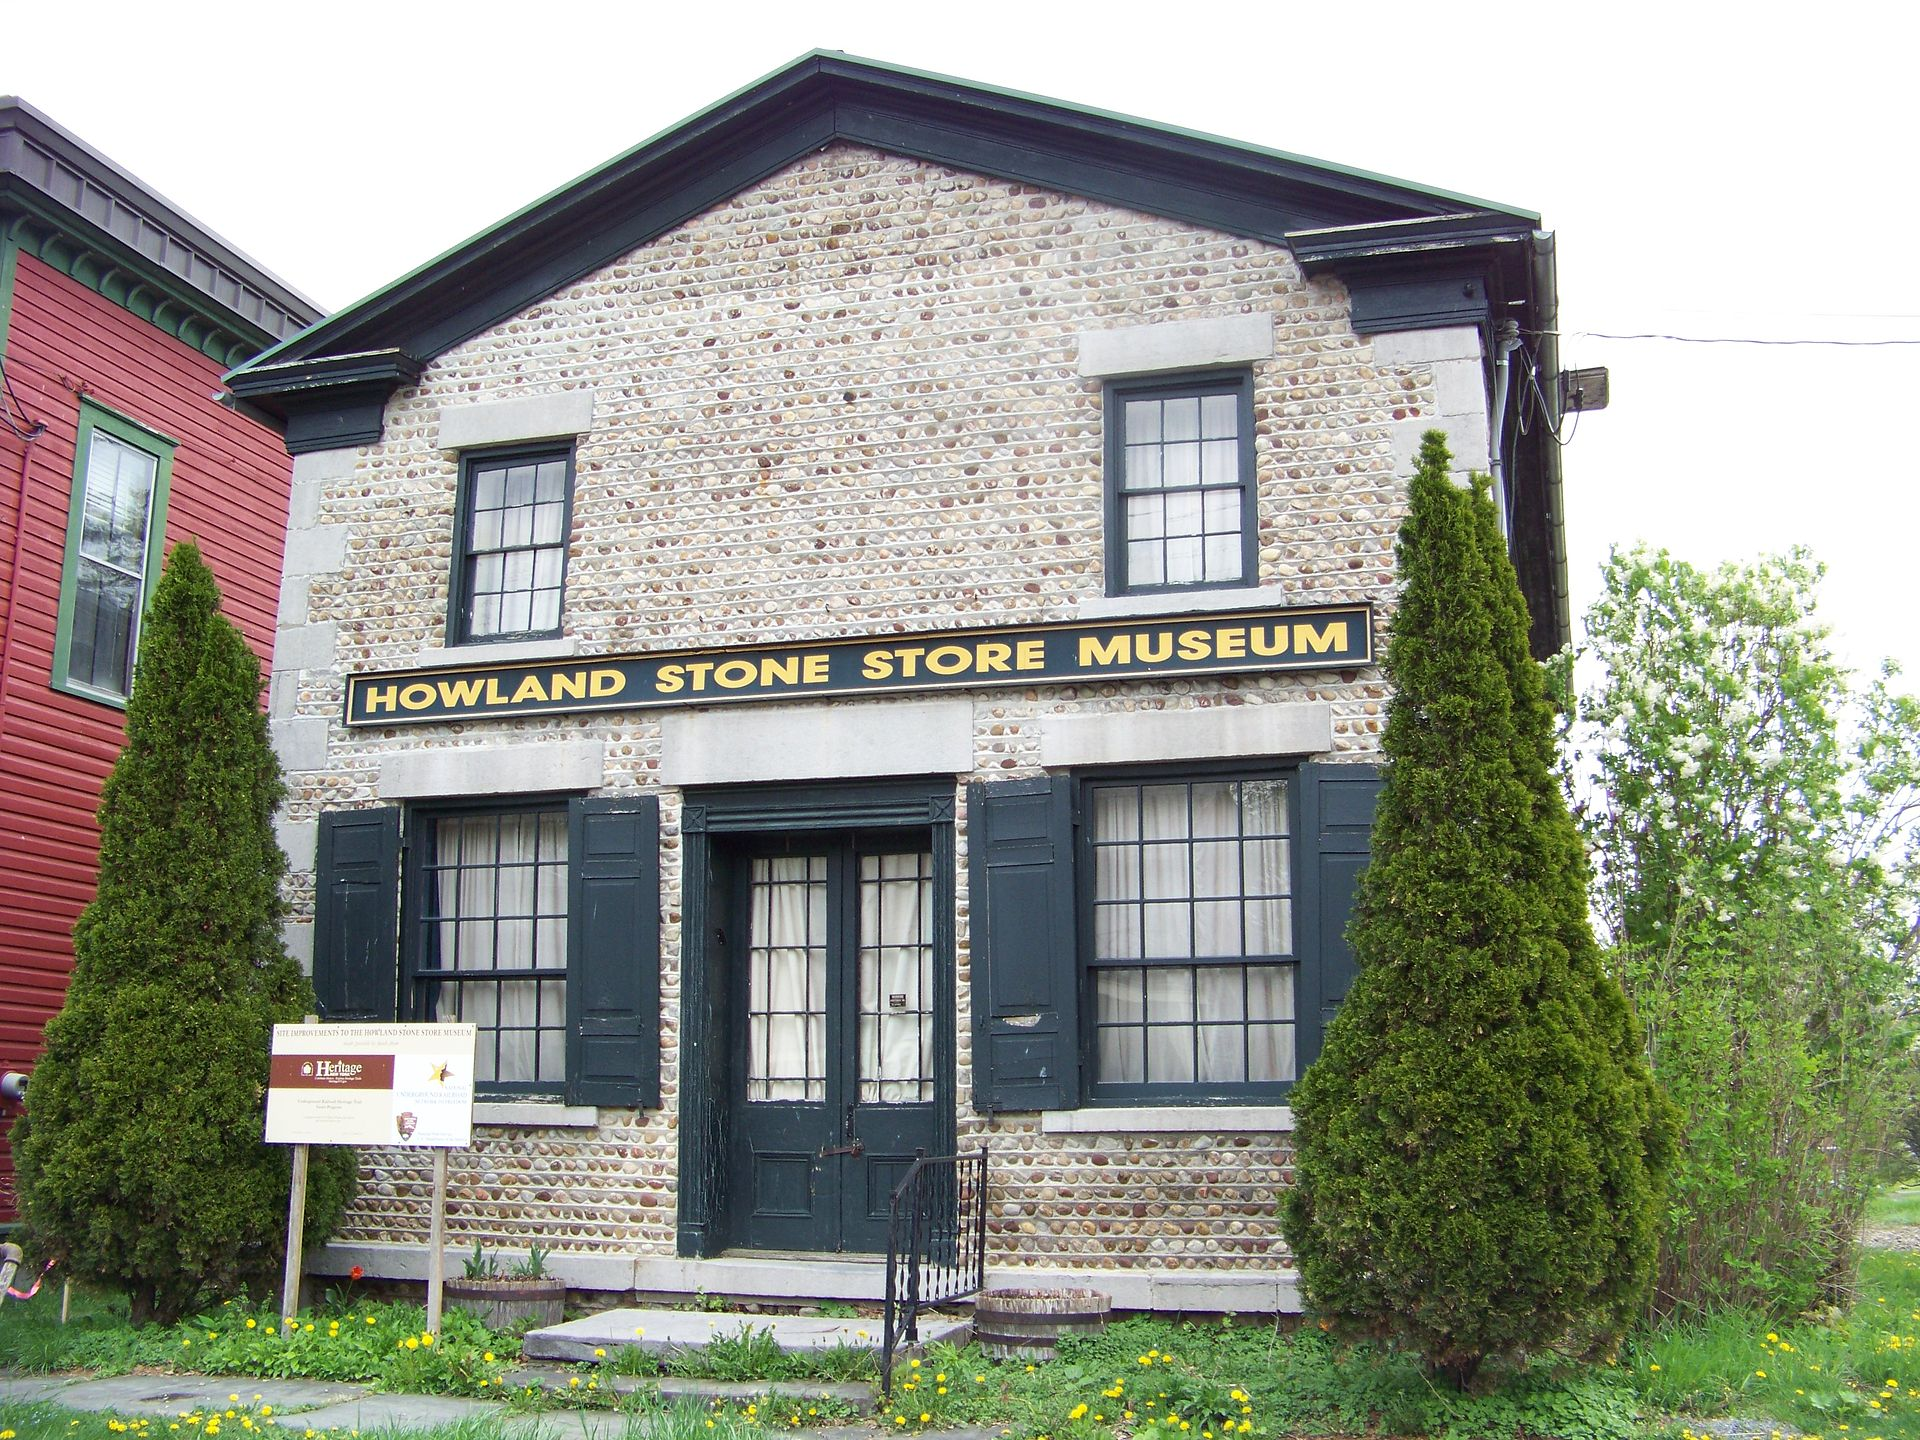 The Howland Stone Store Museum is listed the National Register of Historic Places for both its architecture and association with the abolitionist and suffragist movements.